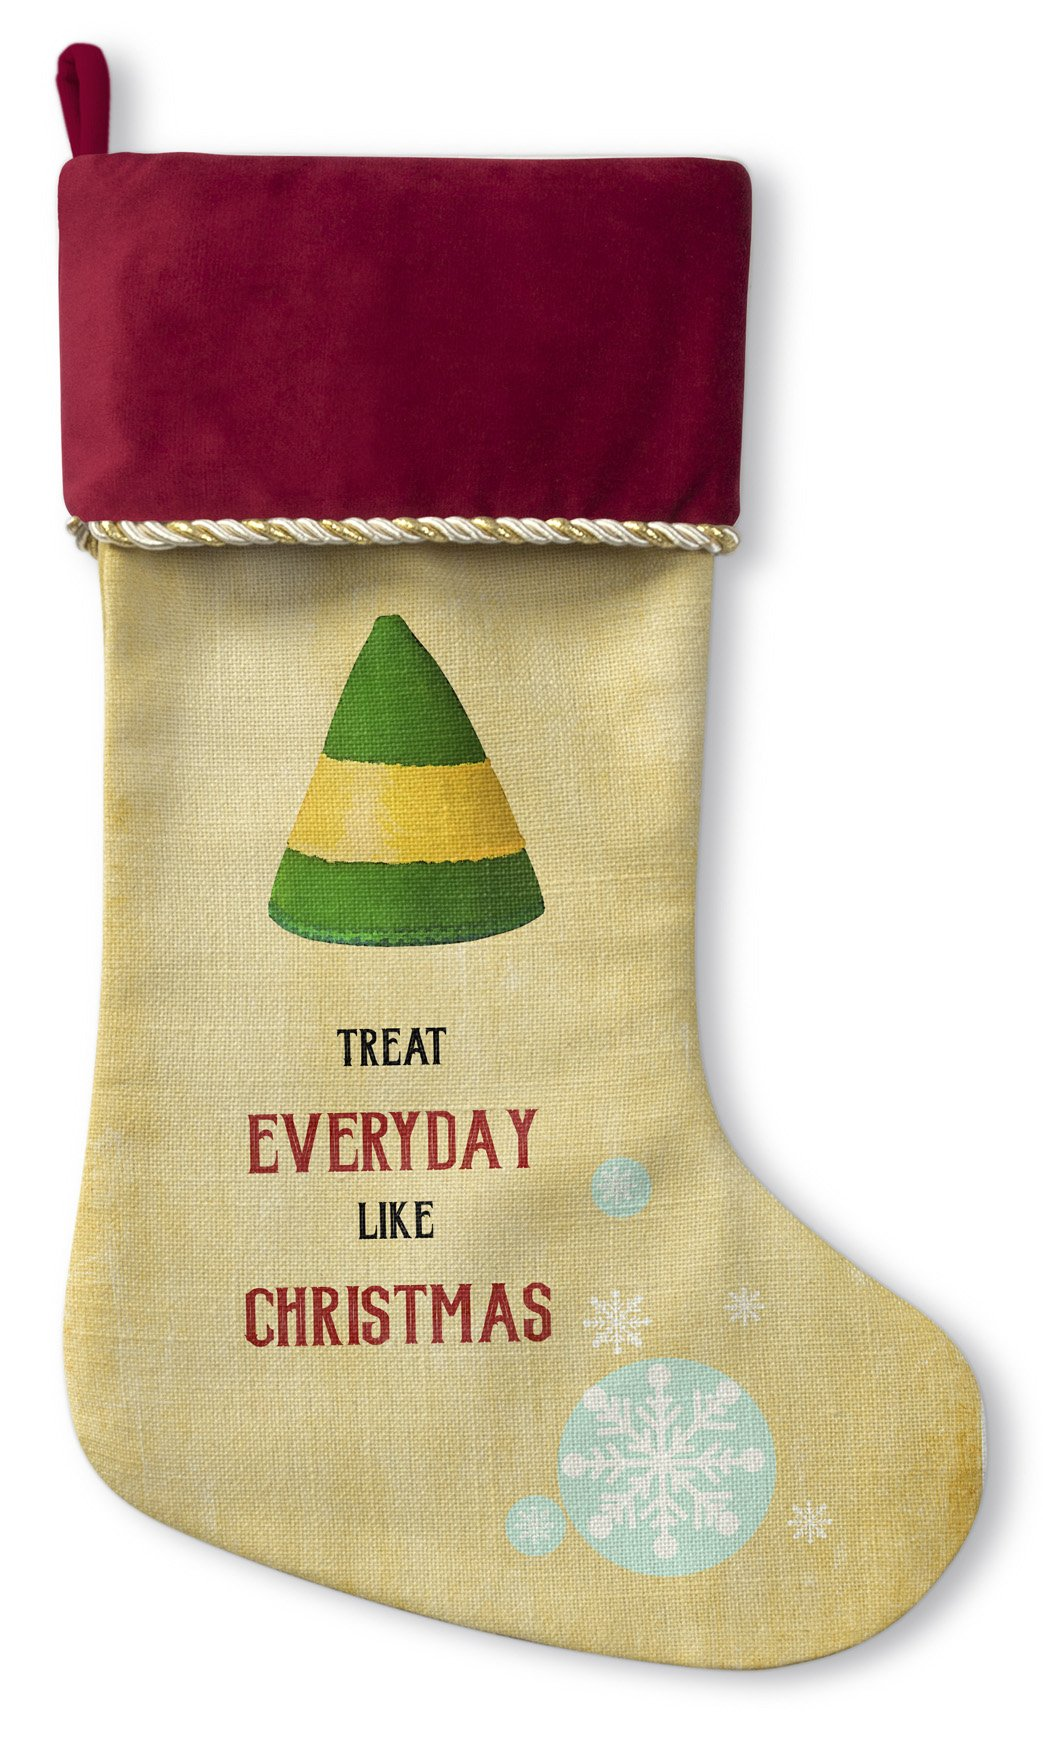 KAVKA DESIGNS Everyday Holiday Stocking Christmas Stocking, (Gold/Red/Green) - TRADITIONS Collection, Size: 12.5x21 - (TELAVC1046CSTR) by KAVKA DESIGNS